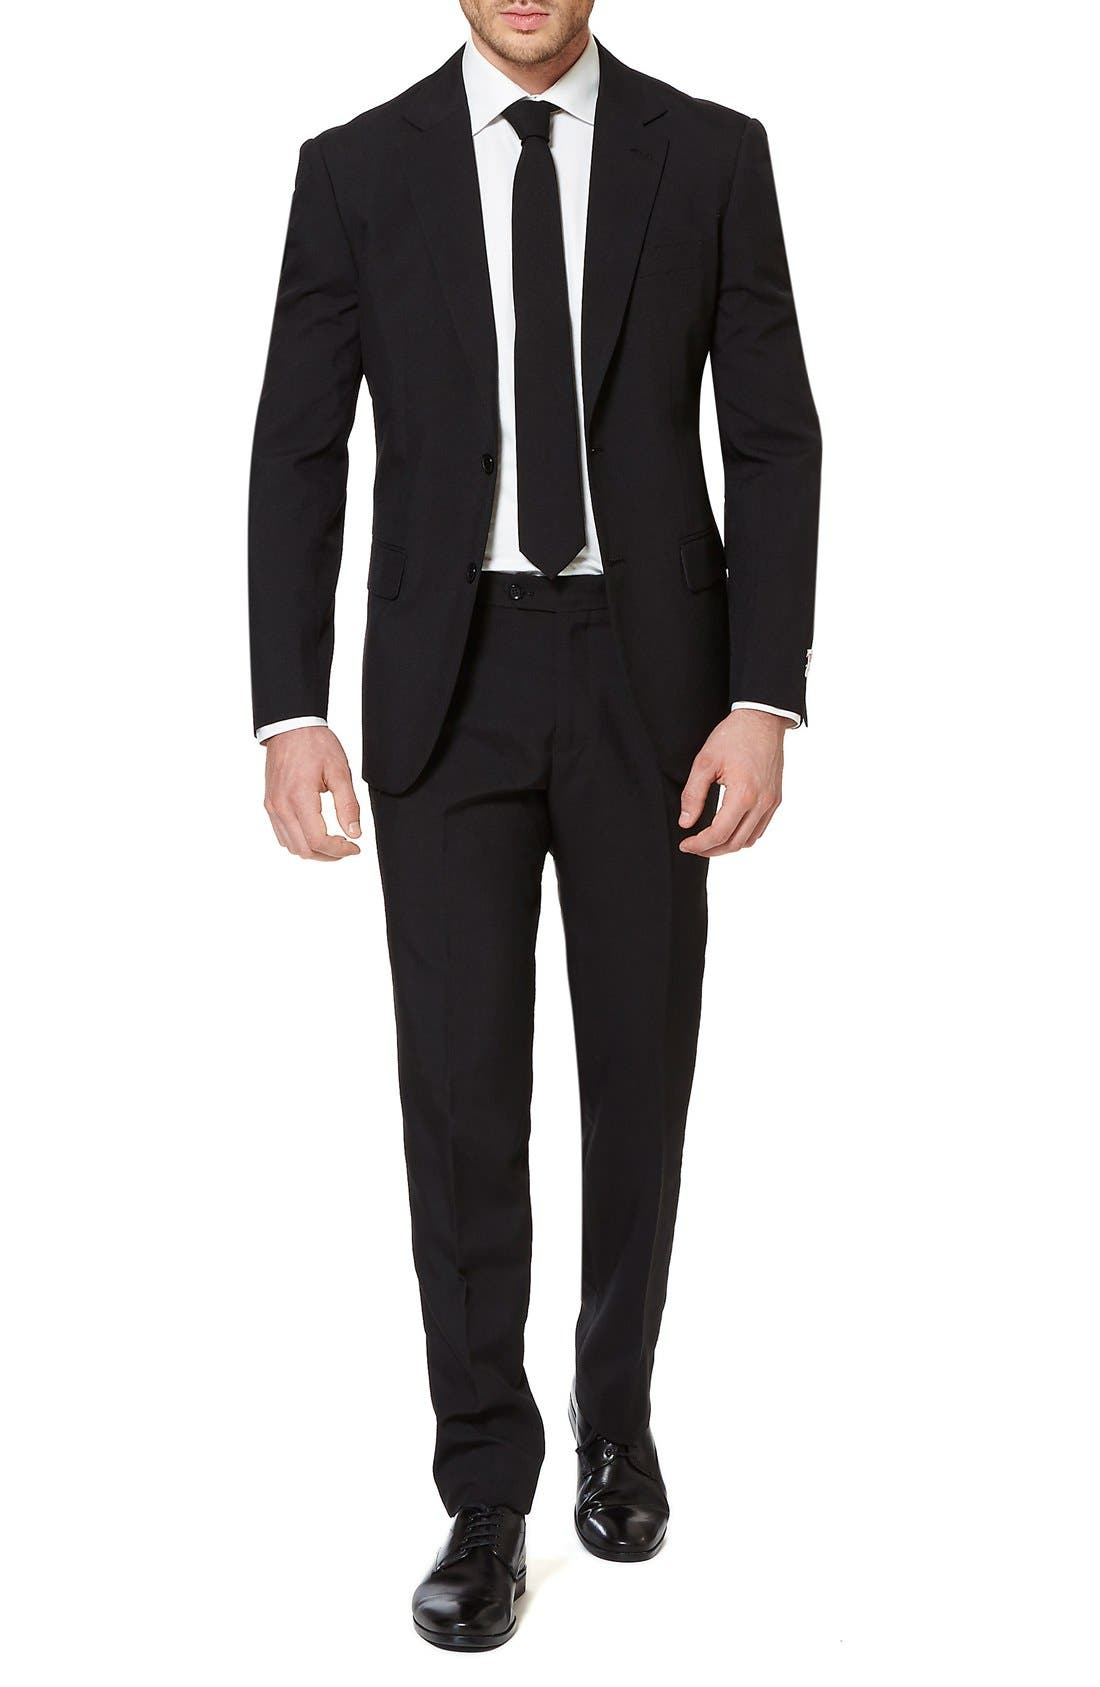 Main Image - OppoSuits 'Black Knight' Trim Fit Two-Piece Suit with Tie